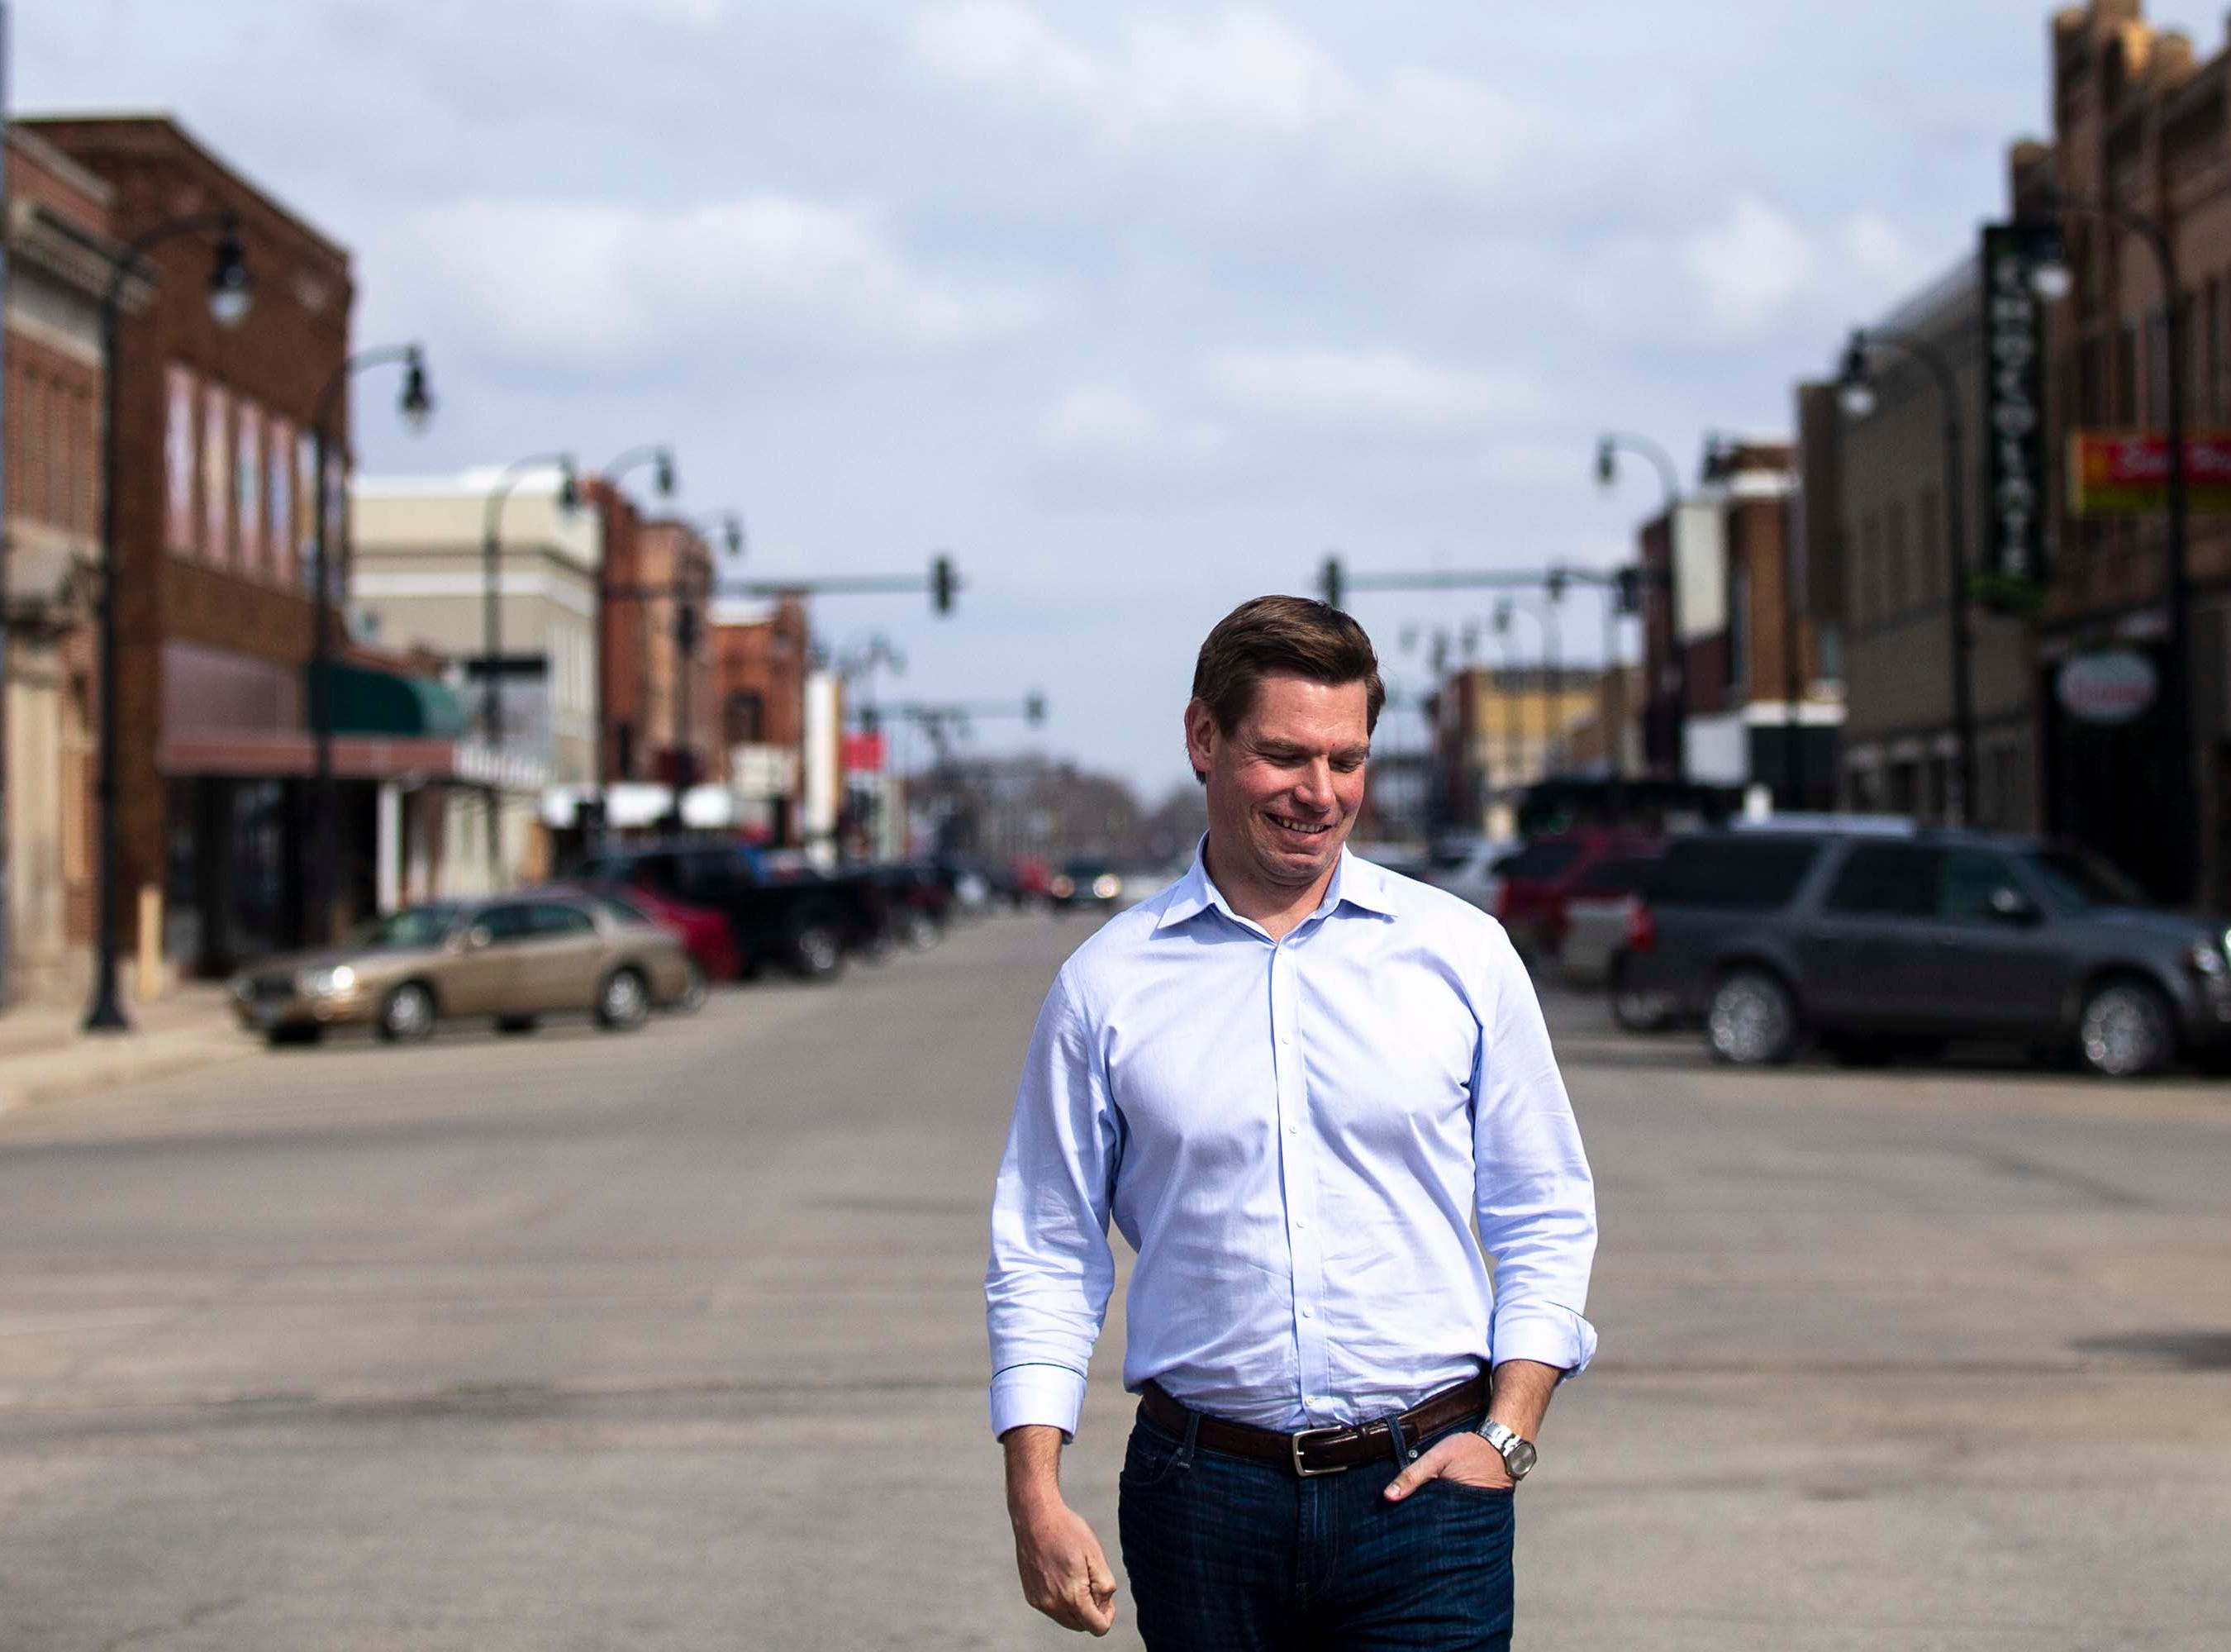 U.S. Rep. Eric Swalwell, D-CA, poses for a photo in downtown Algona, where he lived for three years as a child, on Monday, April 1, 2019, in north central Iowa. Swalwell made the trip to Iowa about a week before announcing he'll run for president.